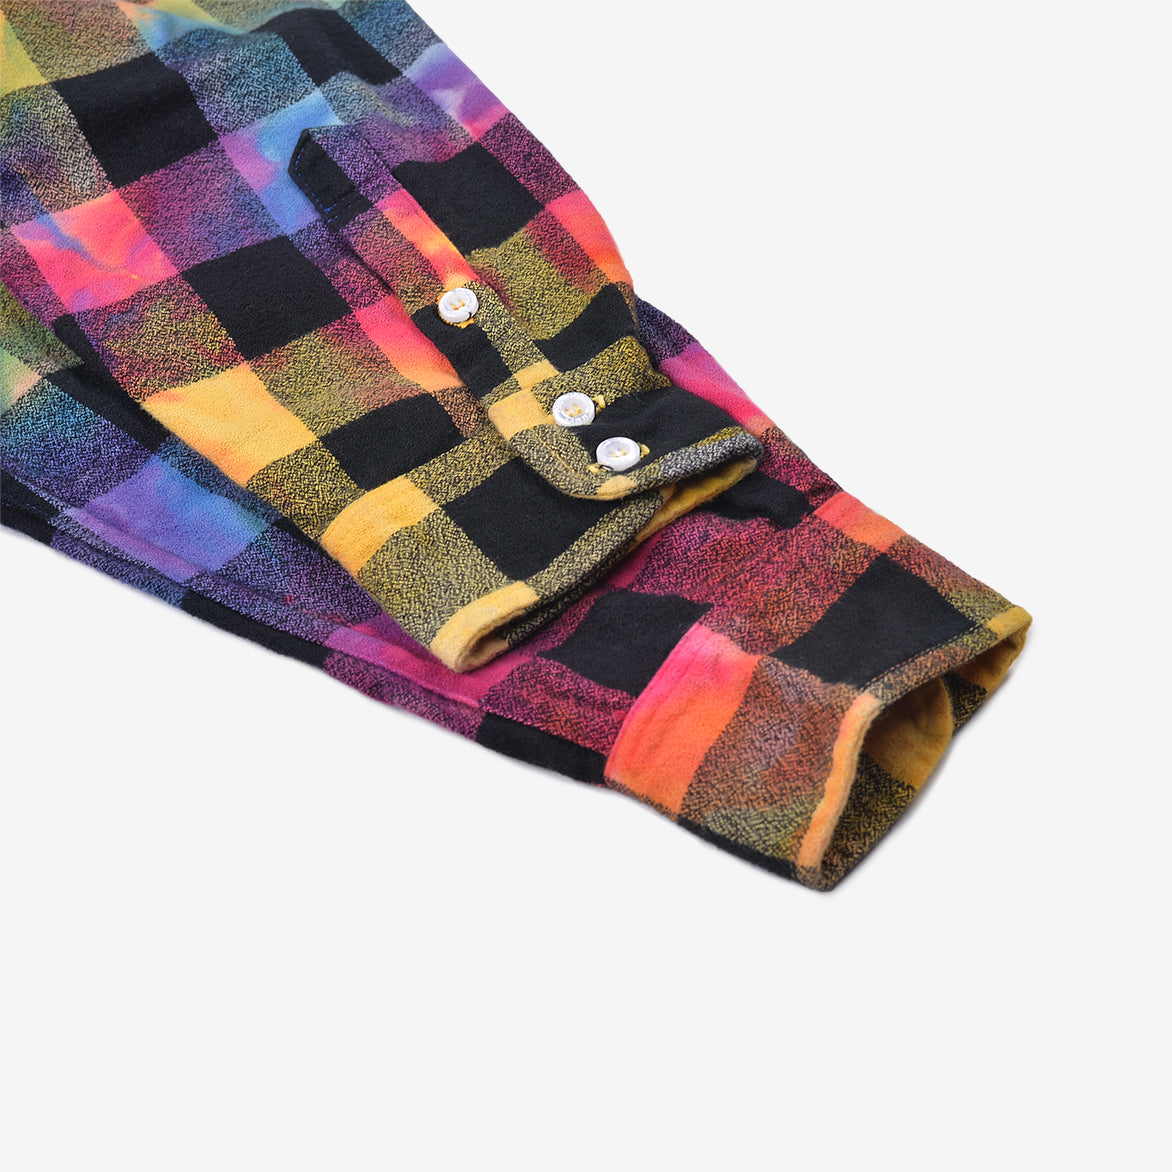 HAND DYED BUFFALO CHECK FLANNEL - RAINBOW